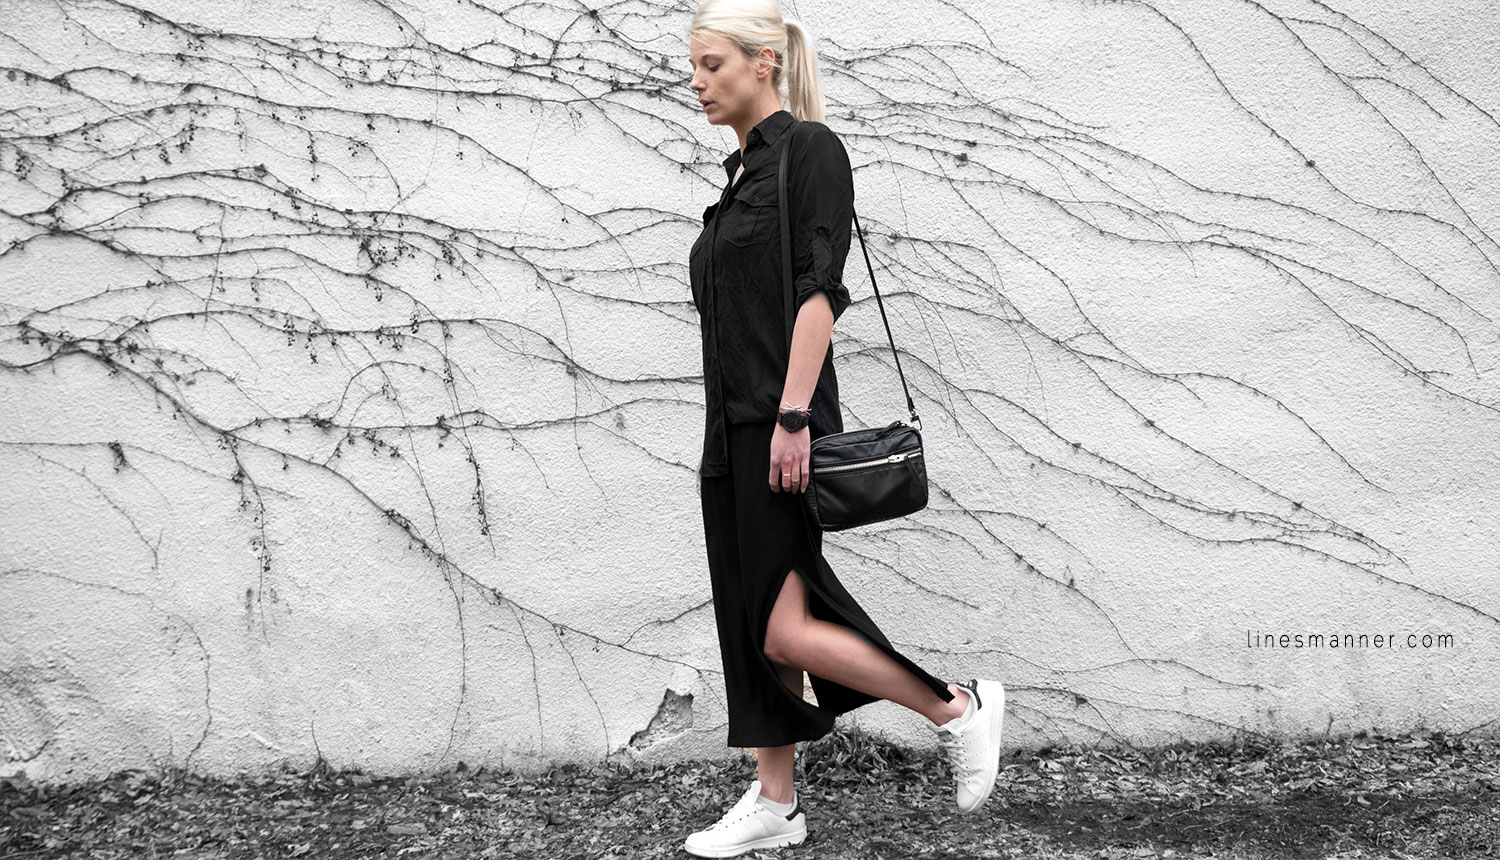 All_black_everything-monochrome-essentials-oversize-fit-textures-minimal-details-basics-staples-layering-feminine-masculine-8